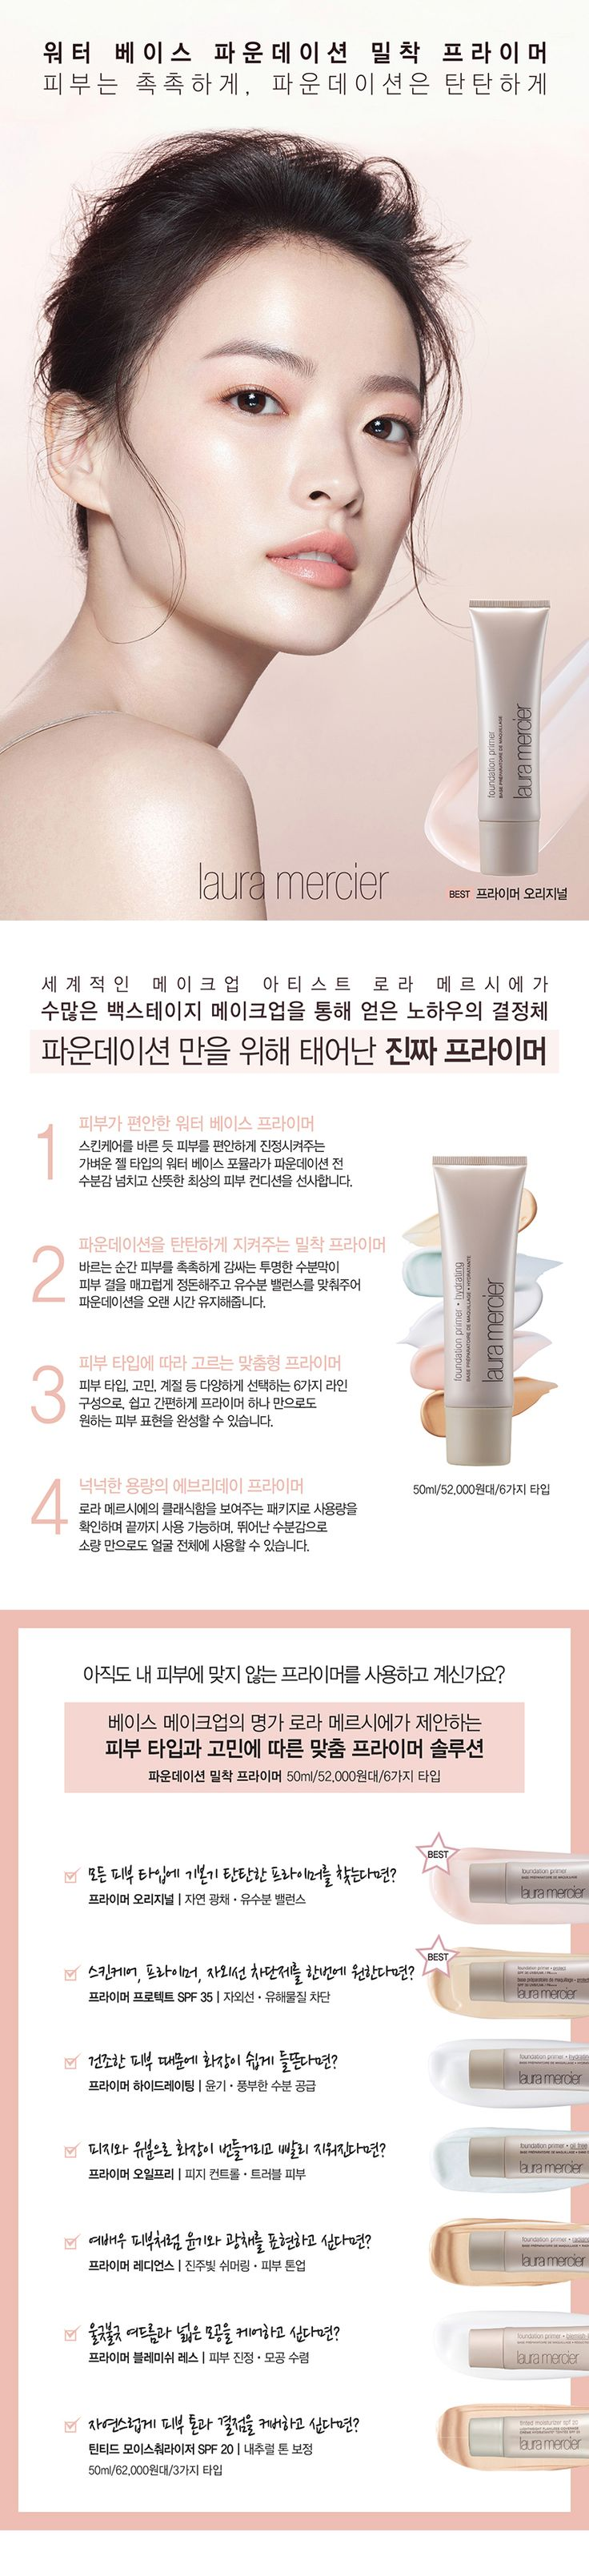 상세보기 | laura mercier